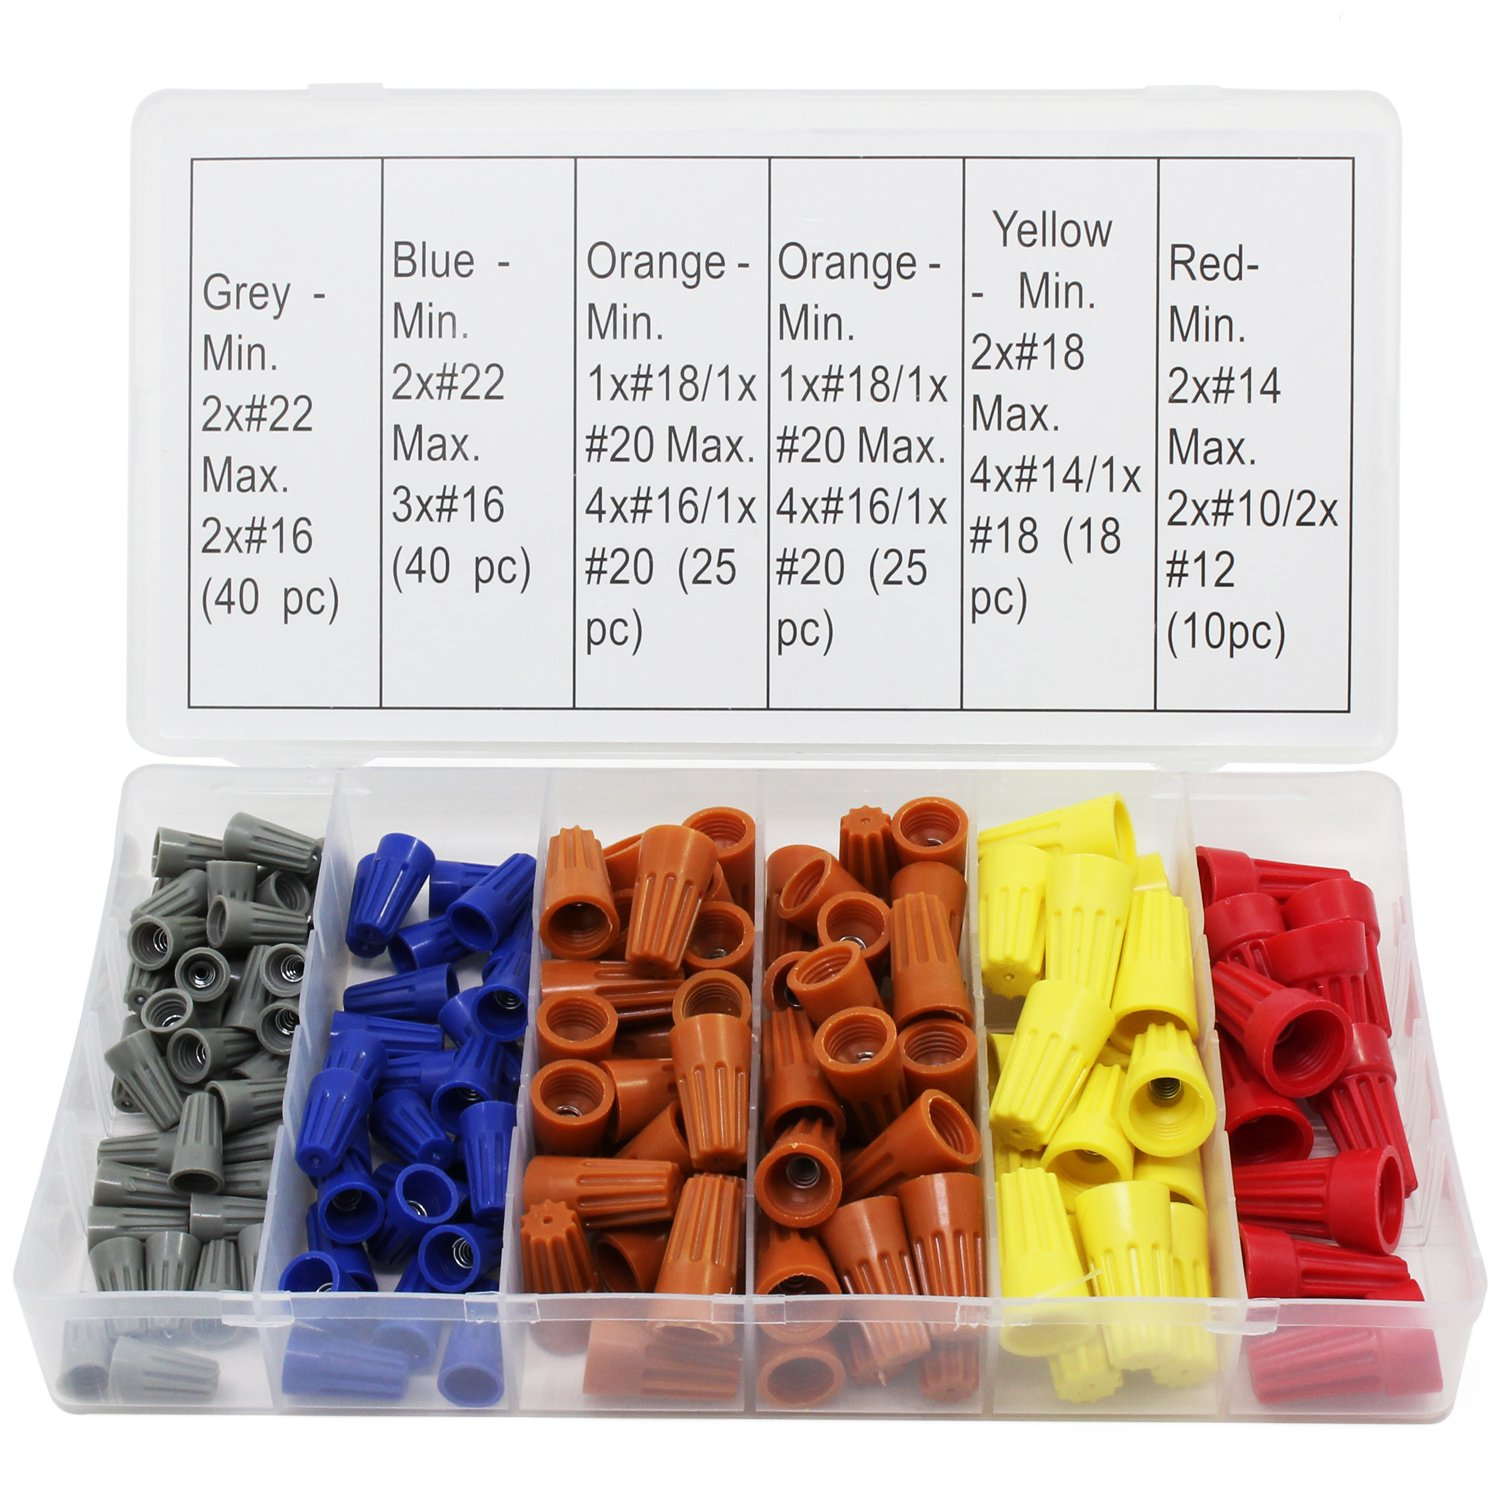 158Pcs 5 Colors Electrical Wire Connector Twist-On Screw Terminal Spring Inserted Nuts Caps Assortment Set158Pcs 5 Colors Electrical Wire Connector Twist-On Screw Terminal Spring Inserted Nuts Caps Assortment Set